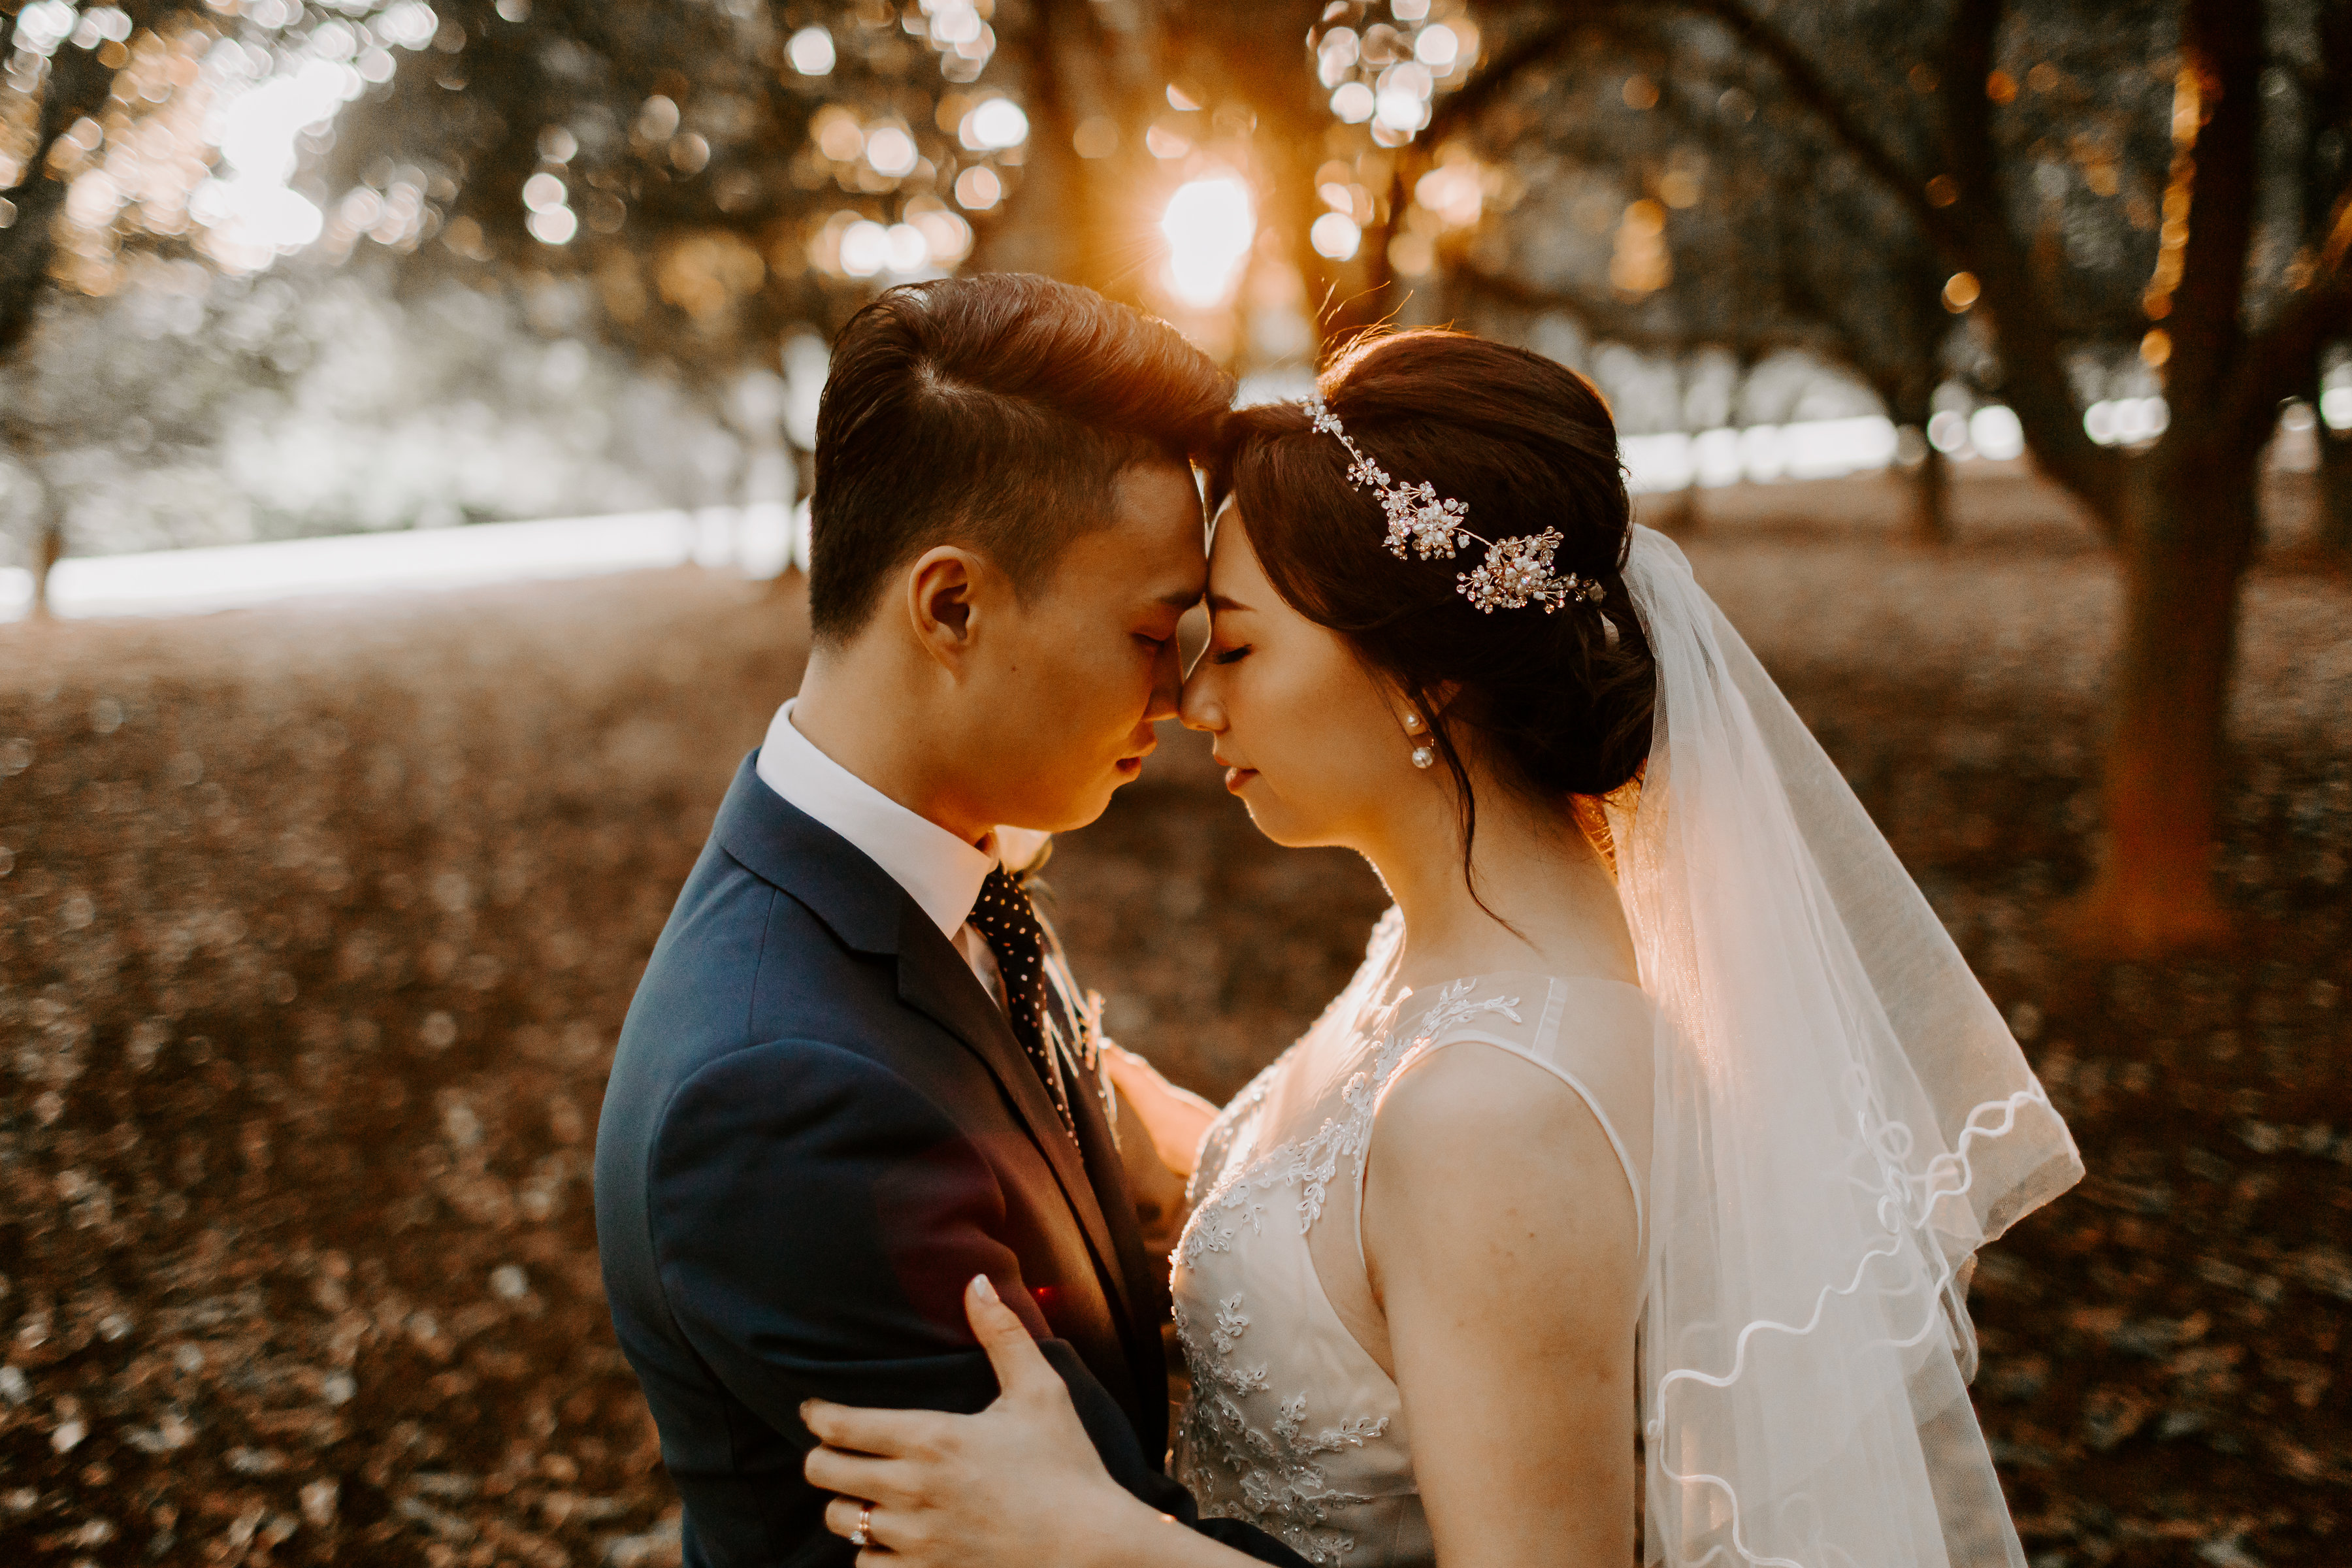 Weddings in Cantonese & Mandarin